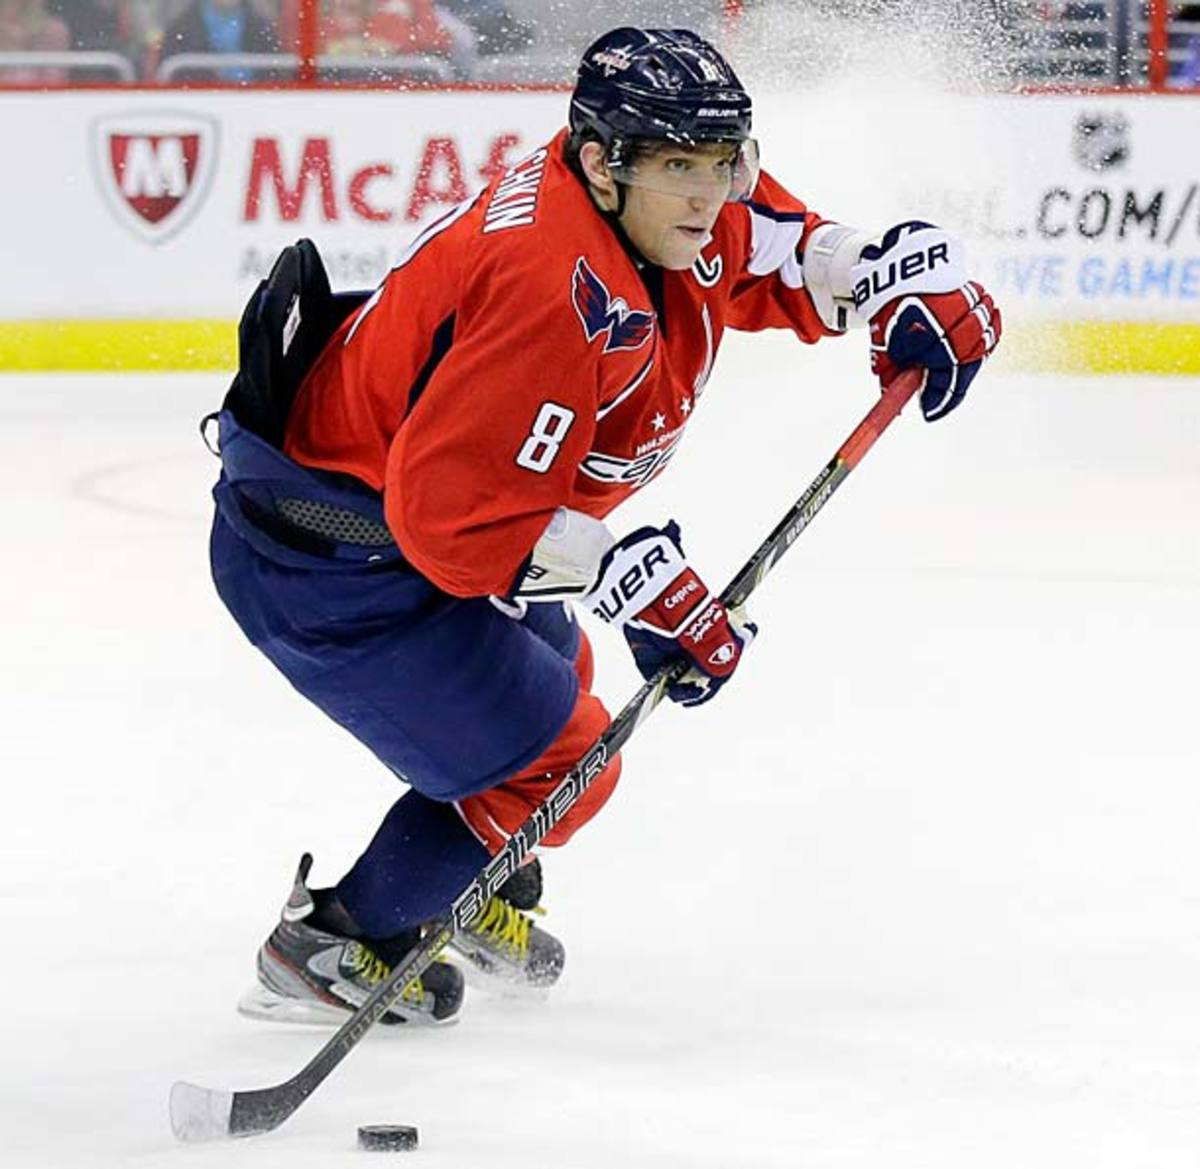 Alex Ovechkin of the Washington Capitals tucks in his jersey.